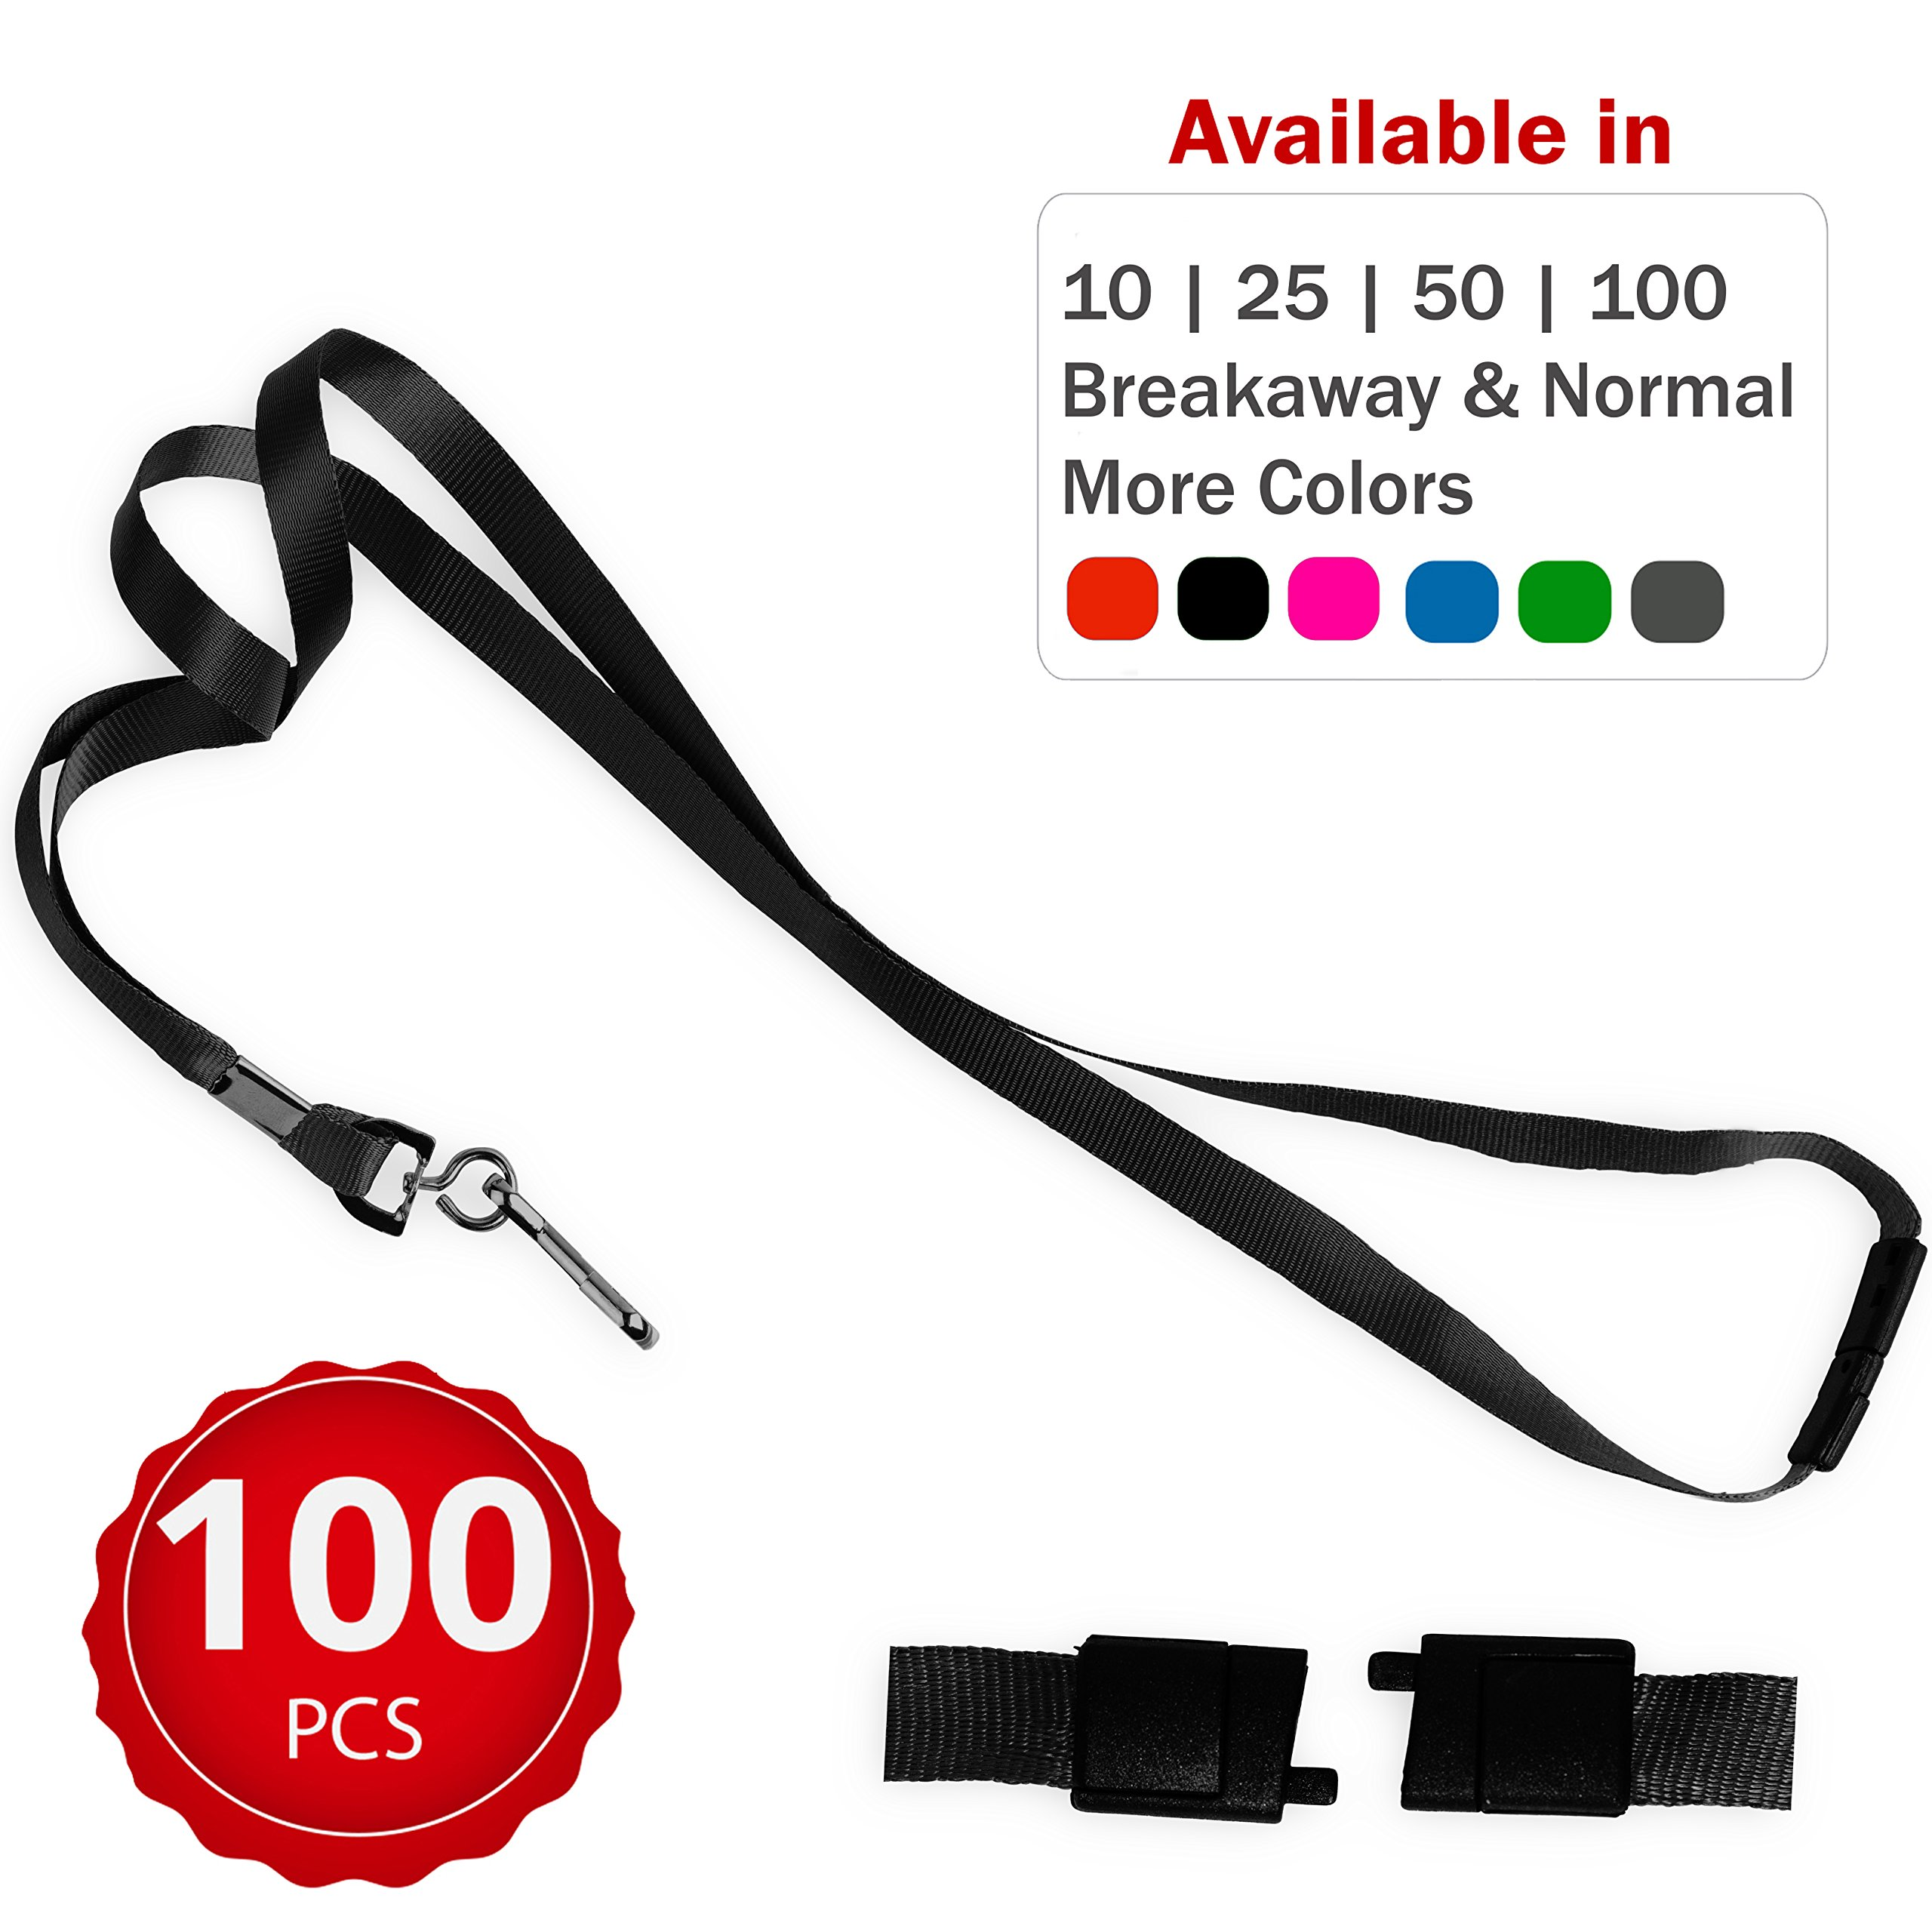 Durably Woven Lanyards with Safety Breakaway ~Premium Quality, Smoothly Finished for Skin-Friendly Comfort~ for Moms, Teachers, Tours, Events, Cruises & More (100 Pack, Black) by Stationery King by STATIONERY KING